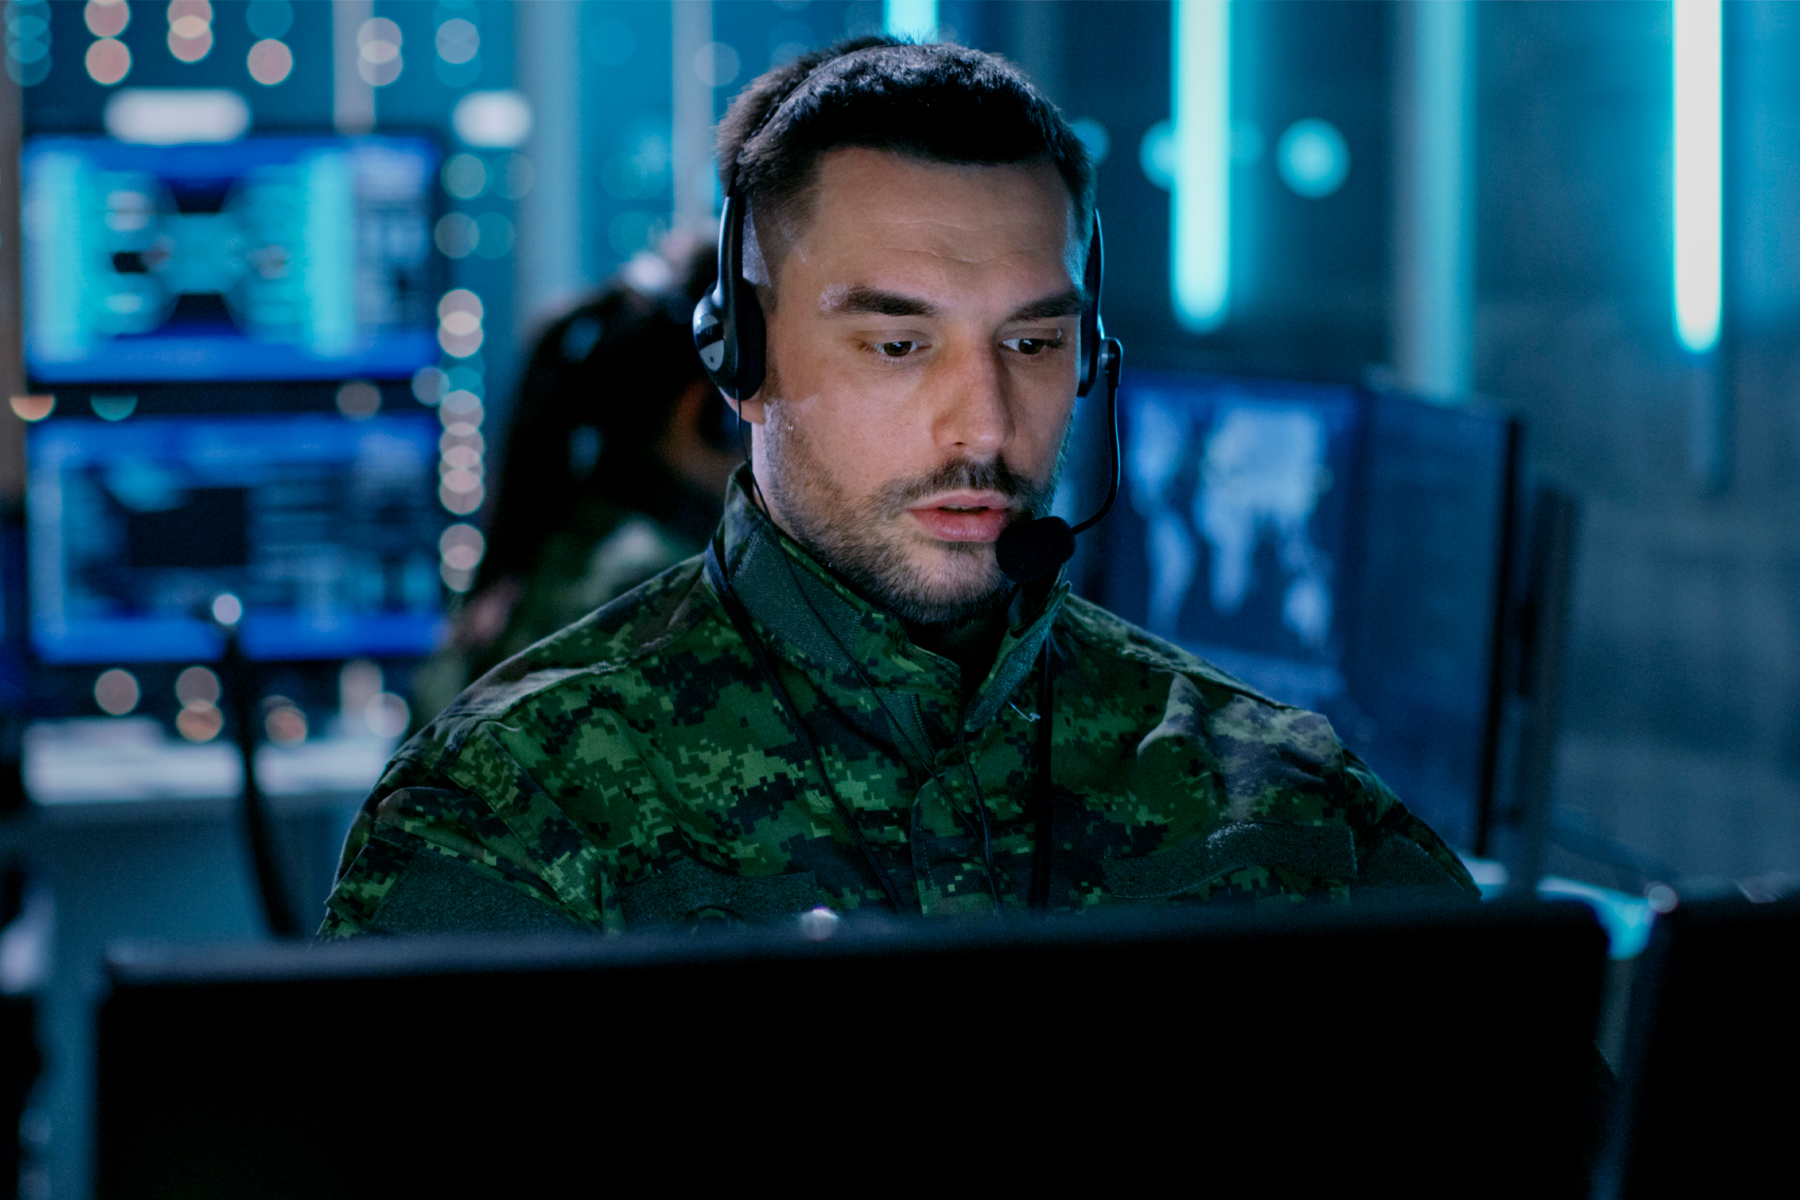 soldier on computer with headset